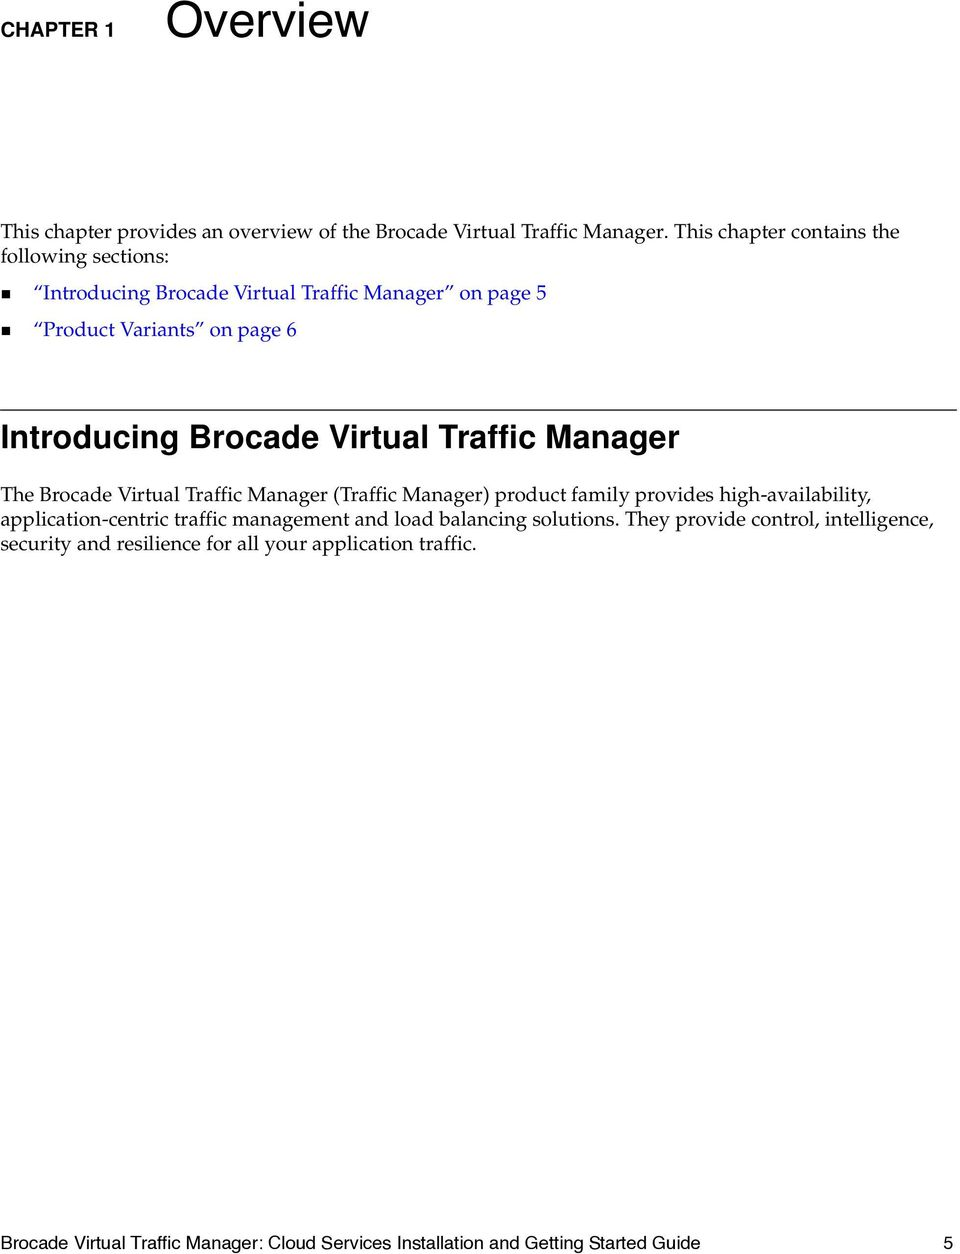 Virtual Traffic Manager The Brocade Virtual Traffic Manager (Traffic Manager) product family provides high-availability, application-centric traffic